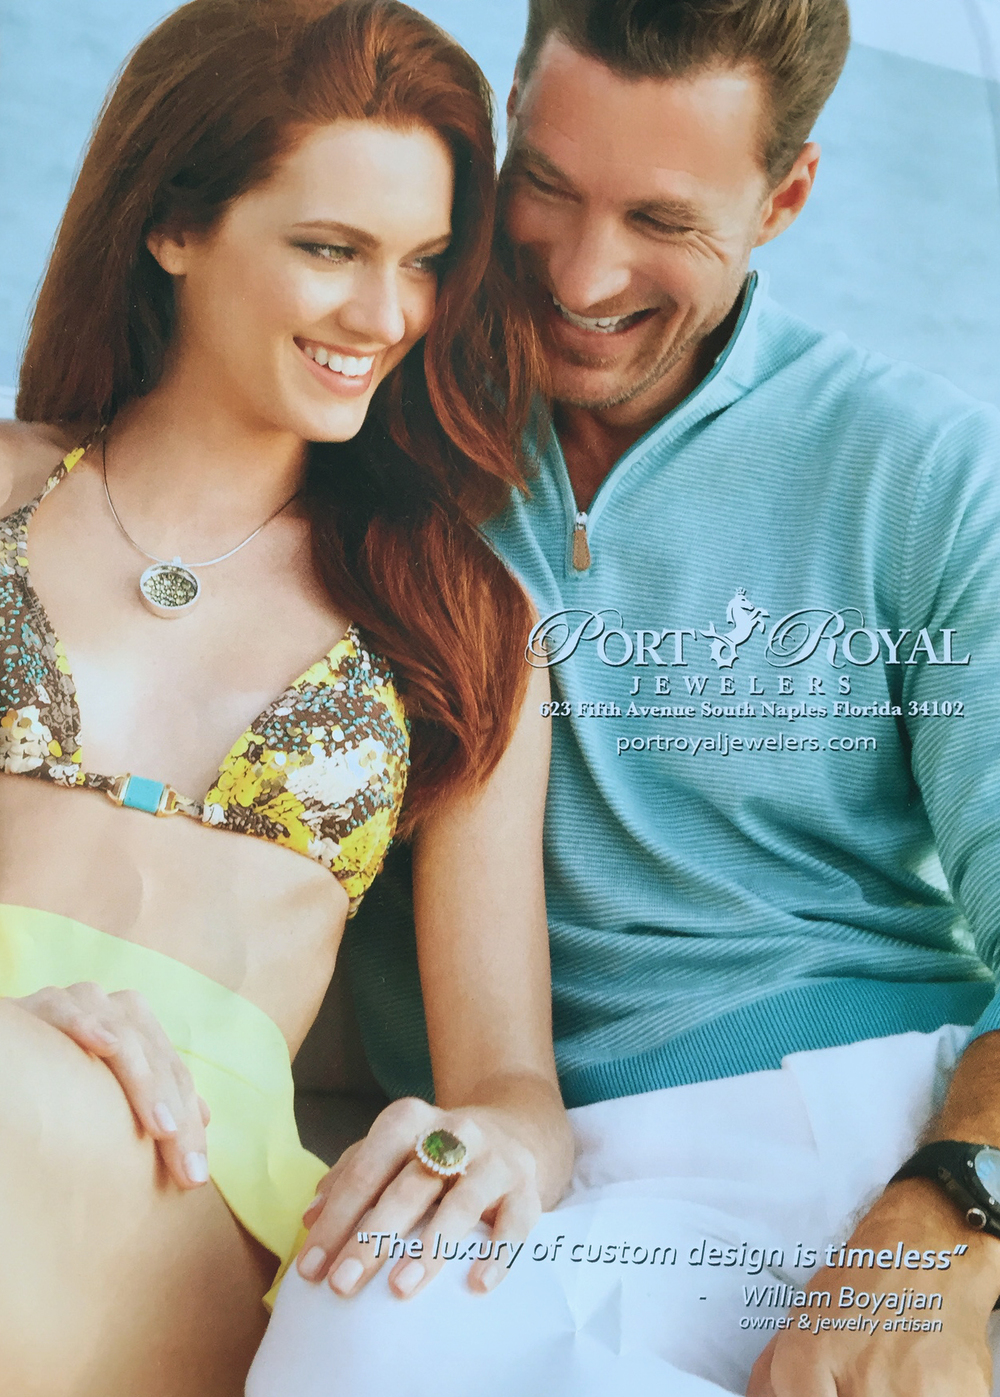 PORT_ROYAL_JEWELERS_ADVERTISING_CAMPAIGN_RESORT_CONCEPT_PHOTOGRAPHED_BY_VANESSA_ROGERS